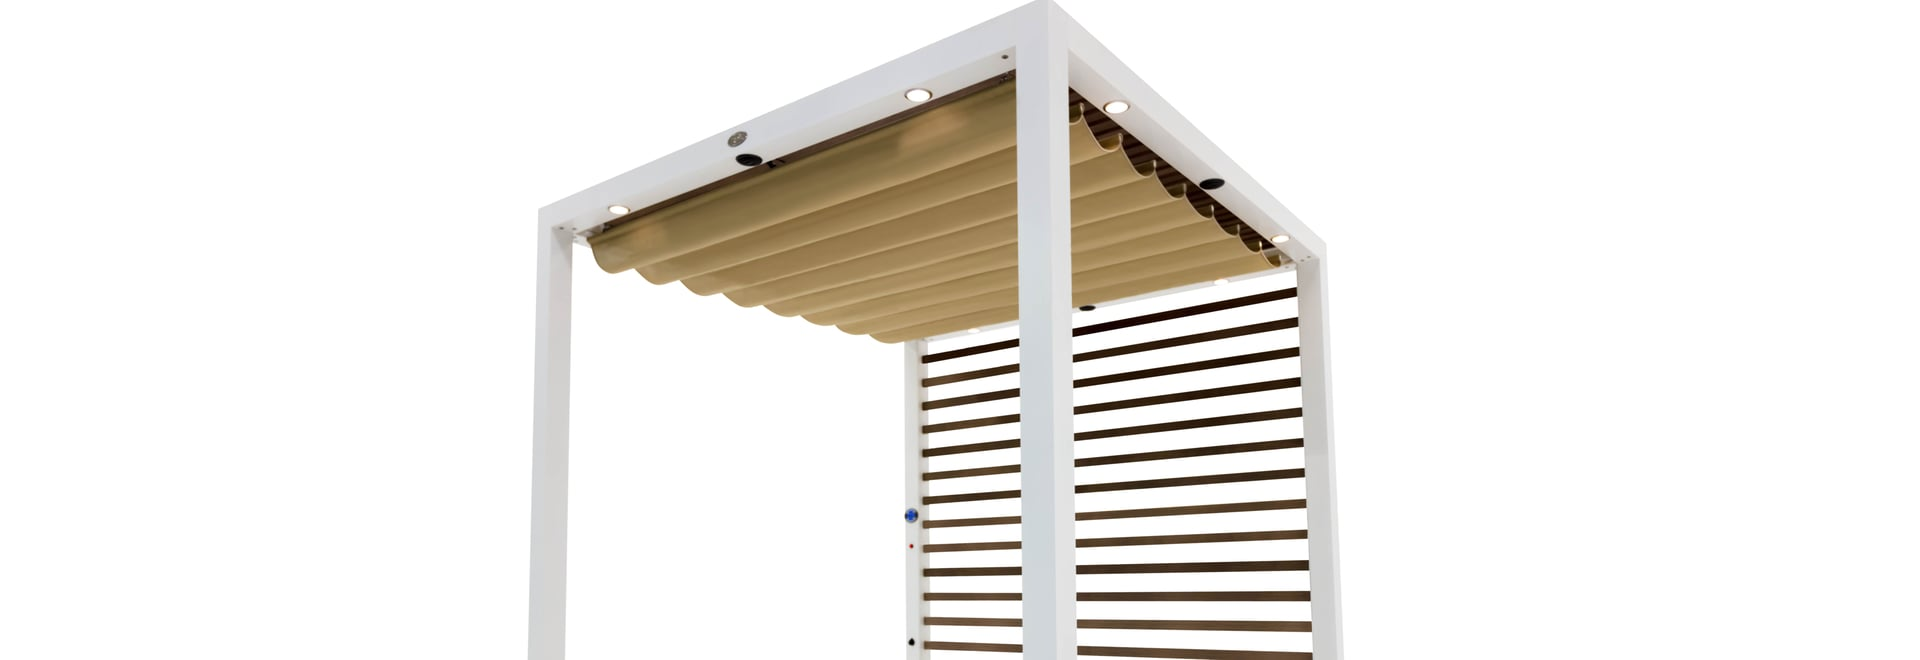 Equinox Cabana in sea shell white